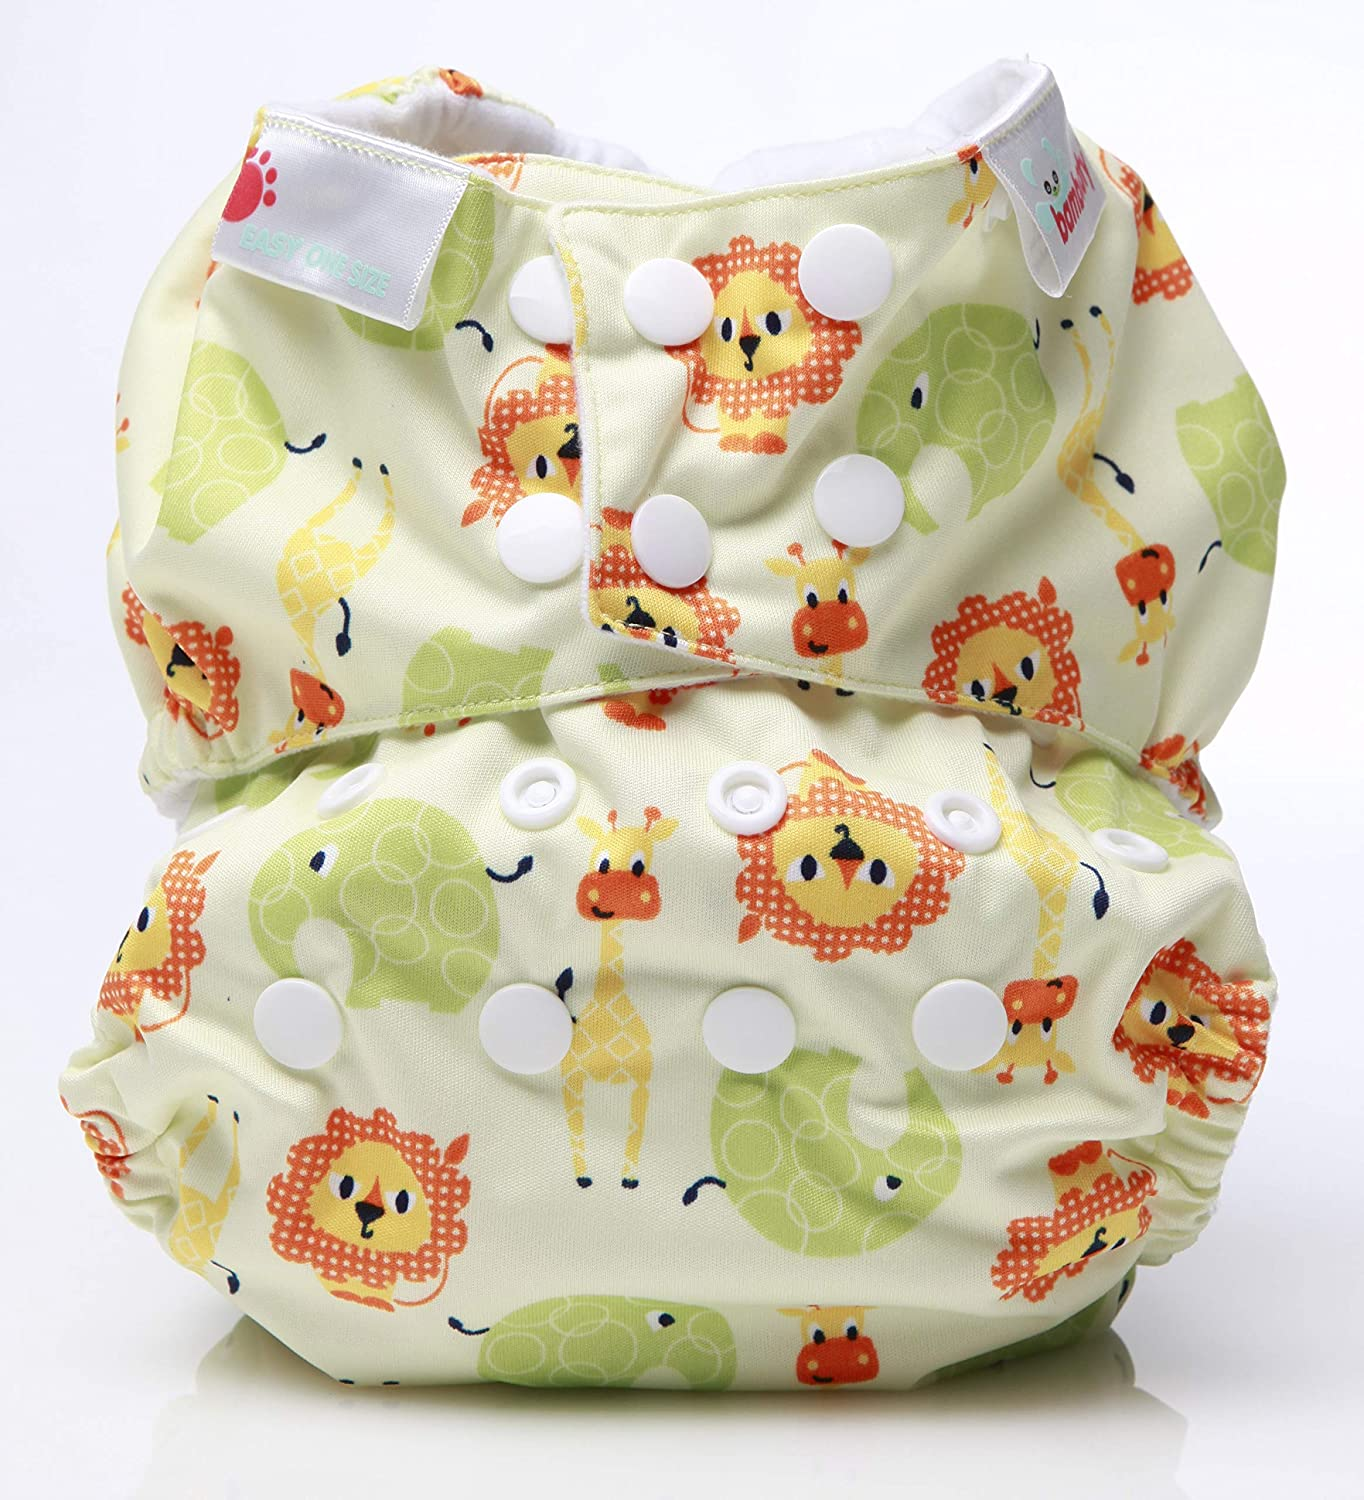 Baby Blue Stripes Bambooty Reusable Nappy All in One Easy One Size Bamboo Organic Cotton Washable